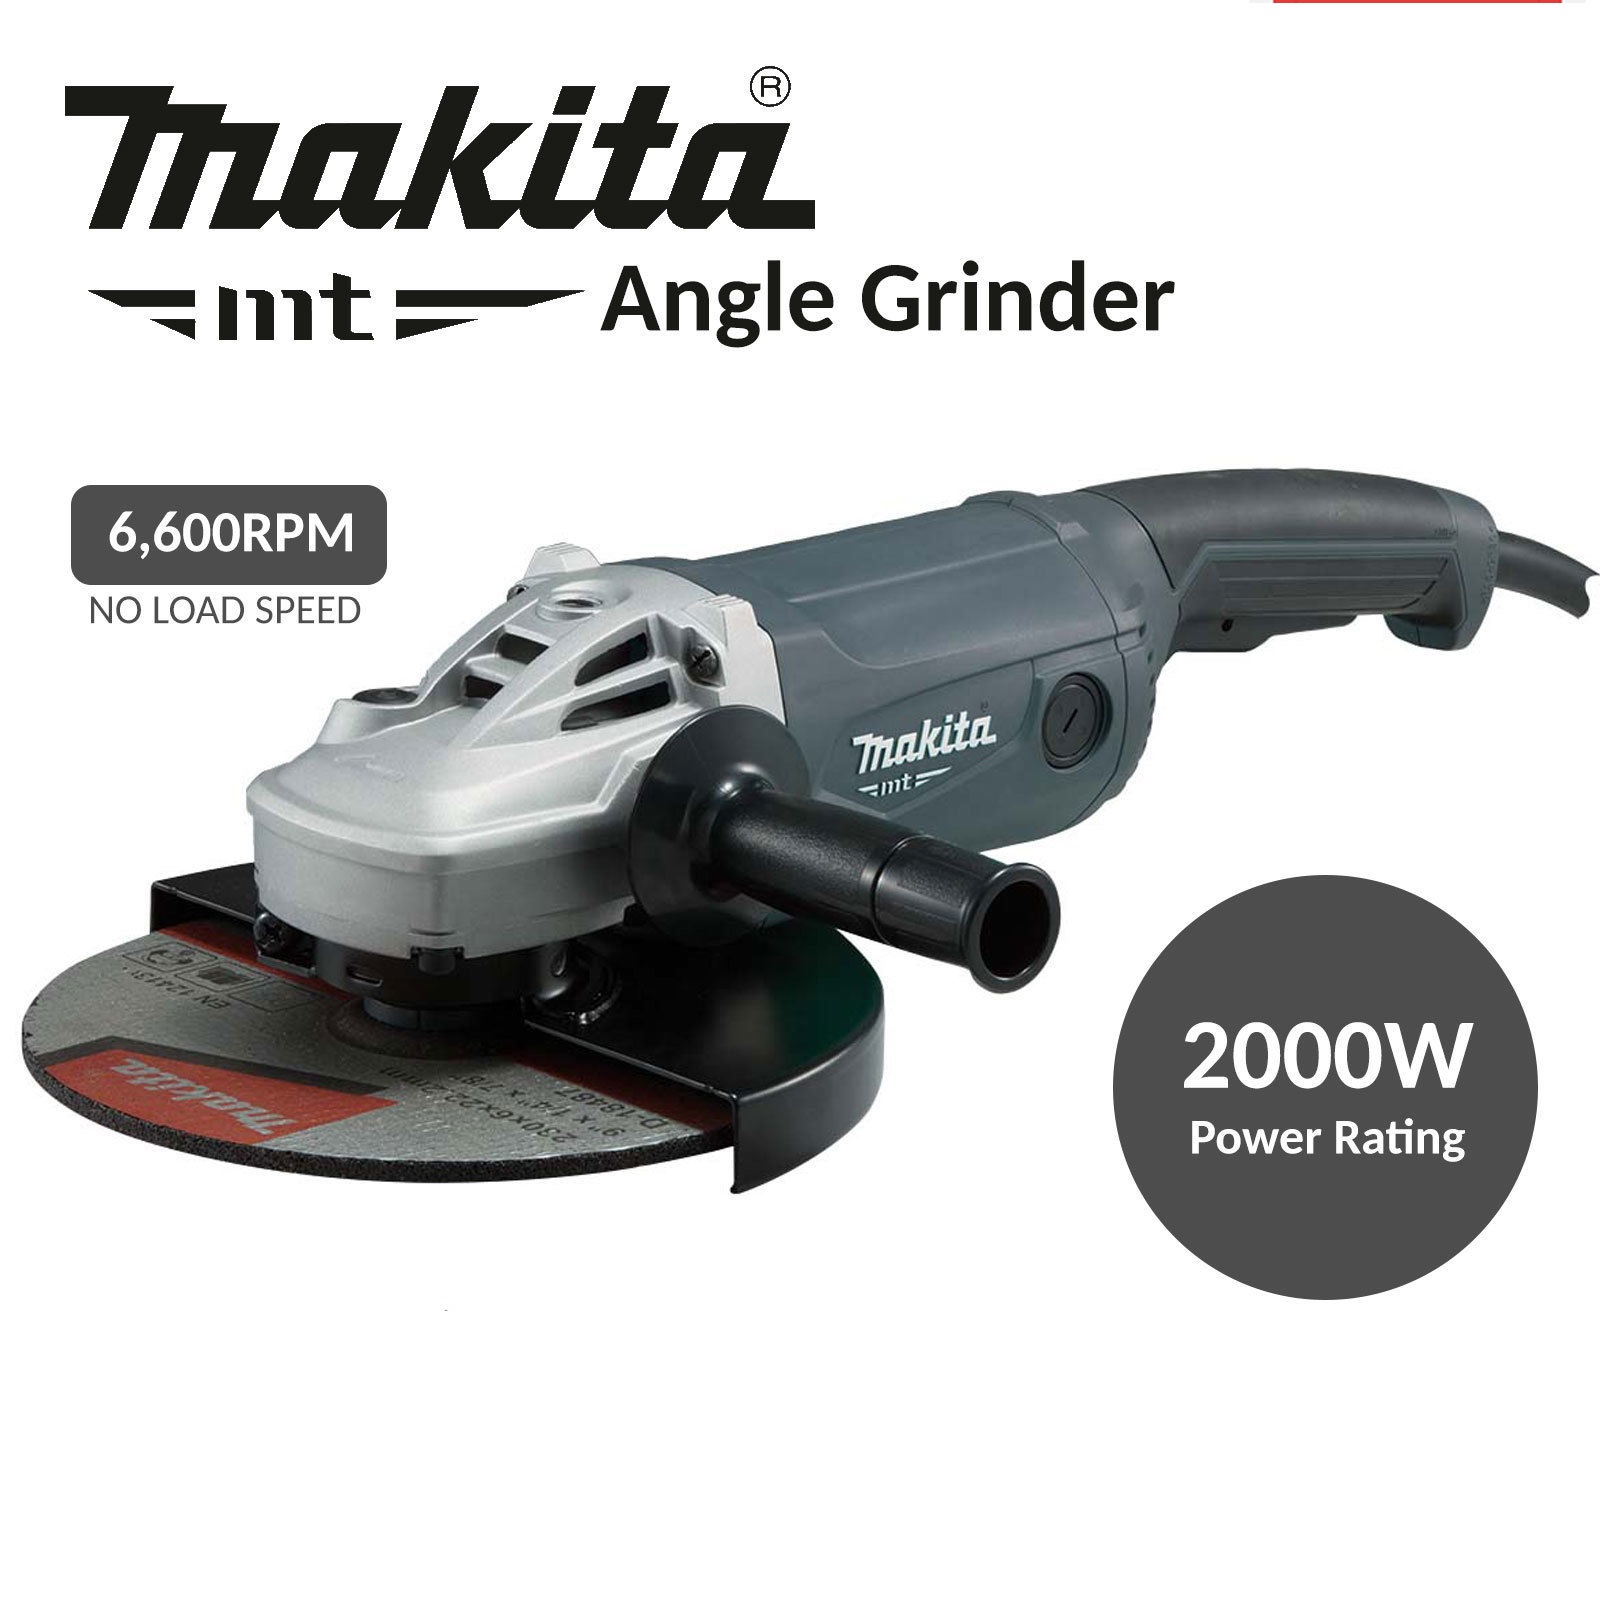 Makita MT Series 9 Angle Grinder M9001G Singapore Online Home DIY Hardware Tools Shop